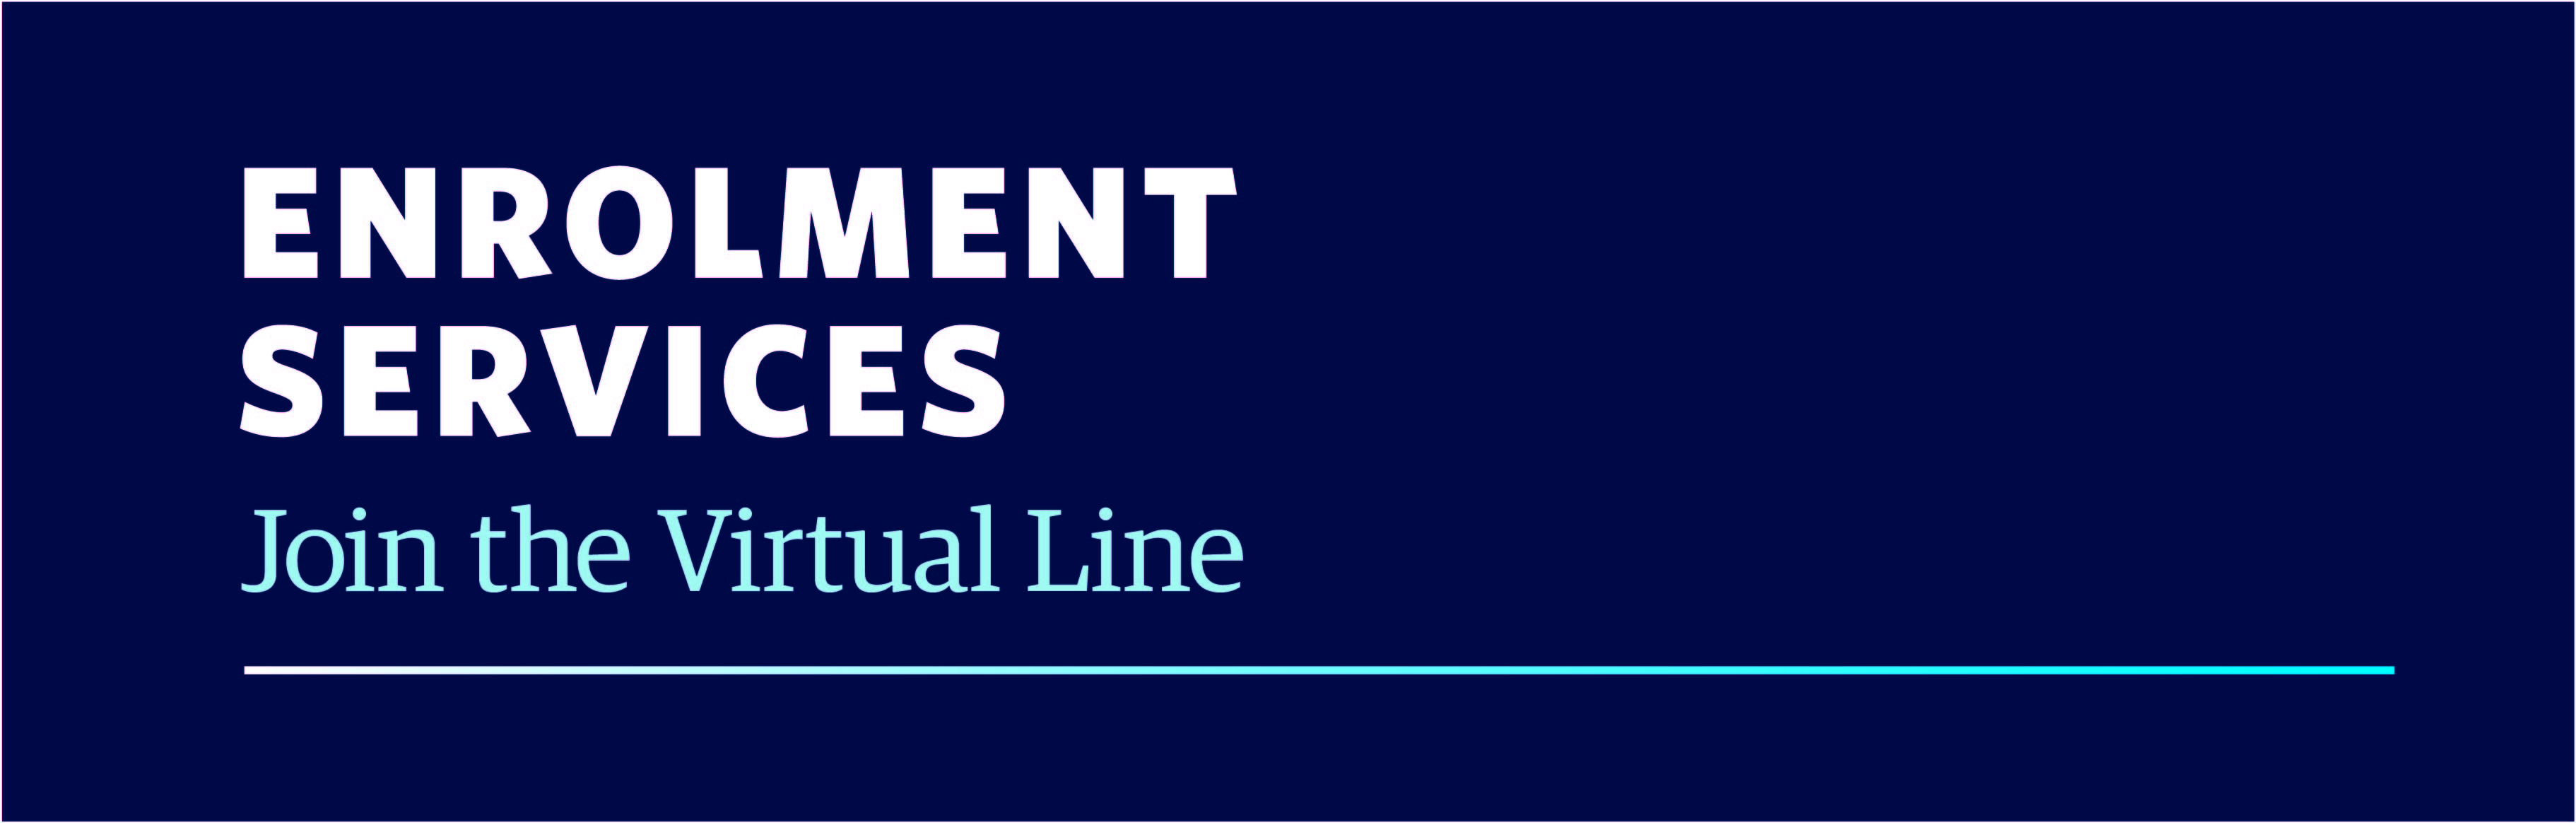 Enrolment Services join the virtual line